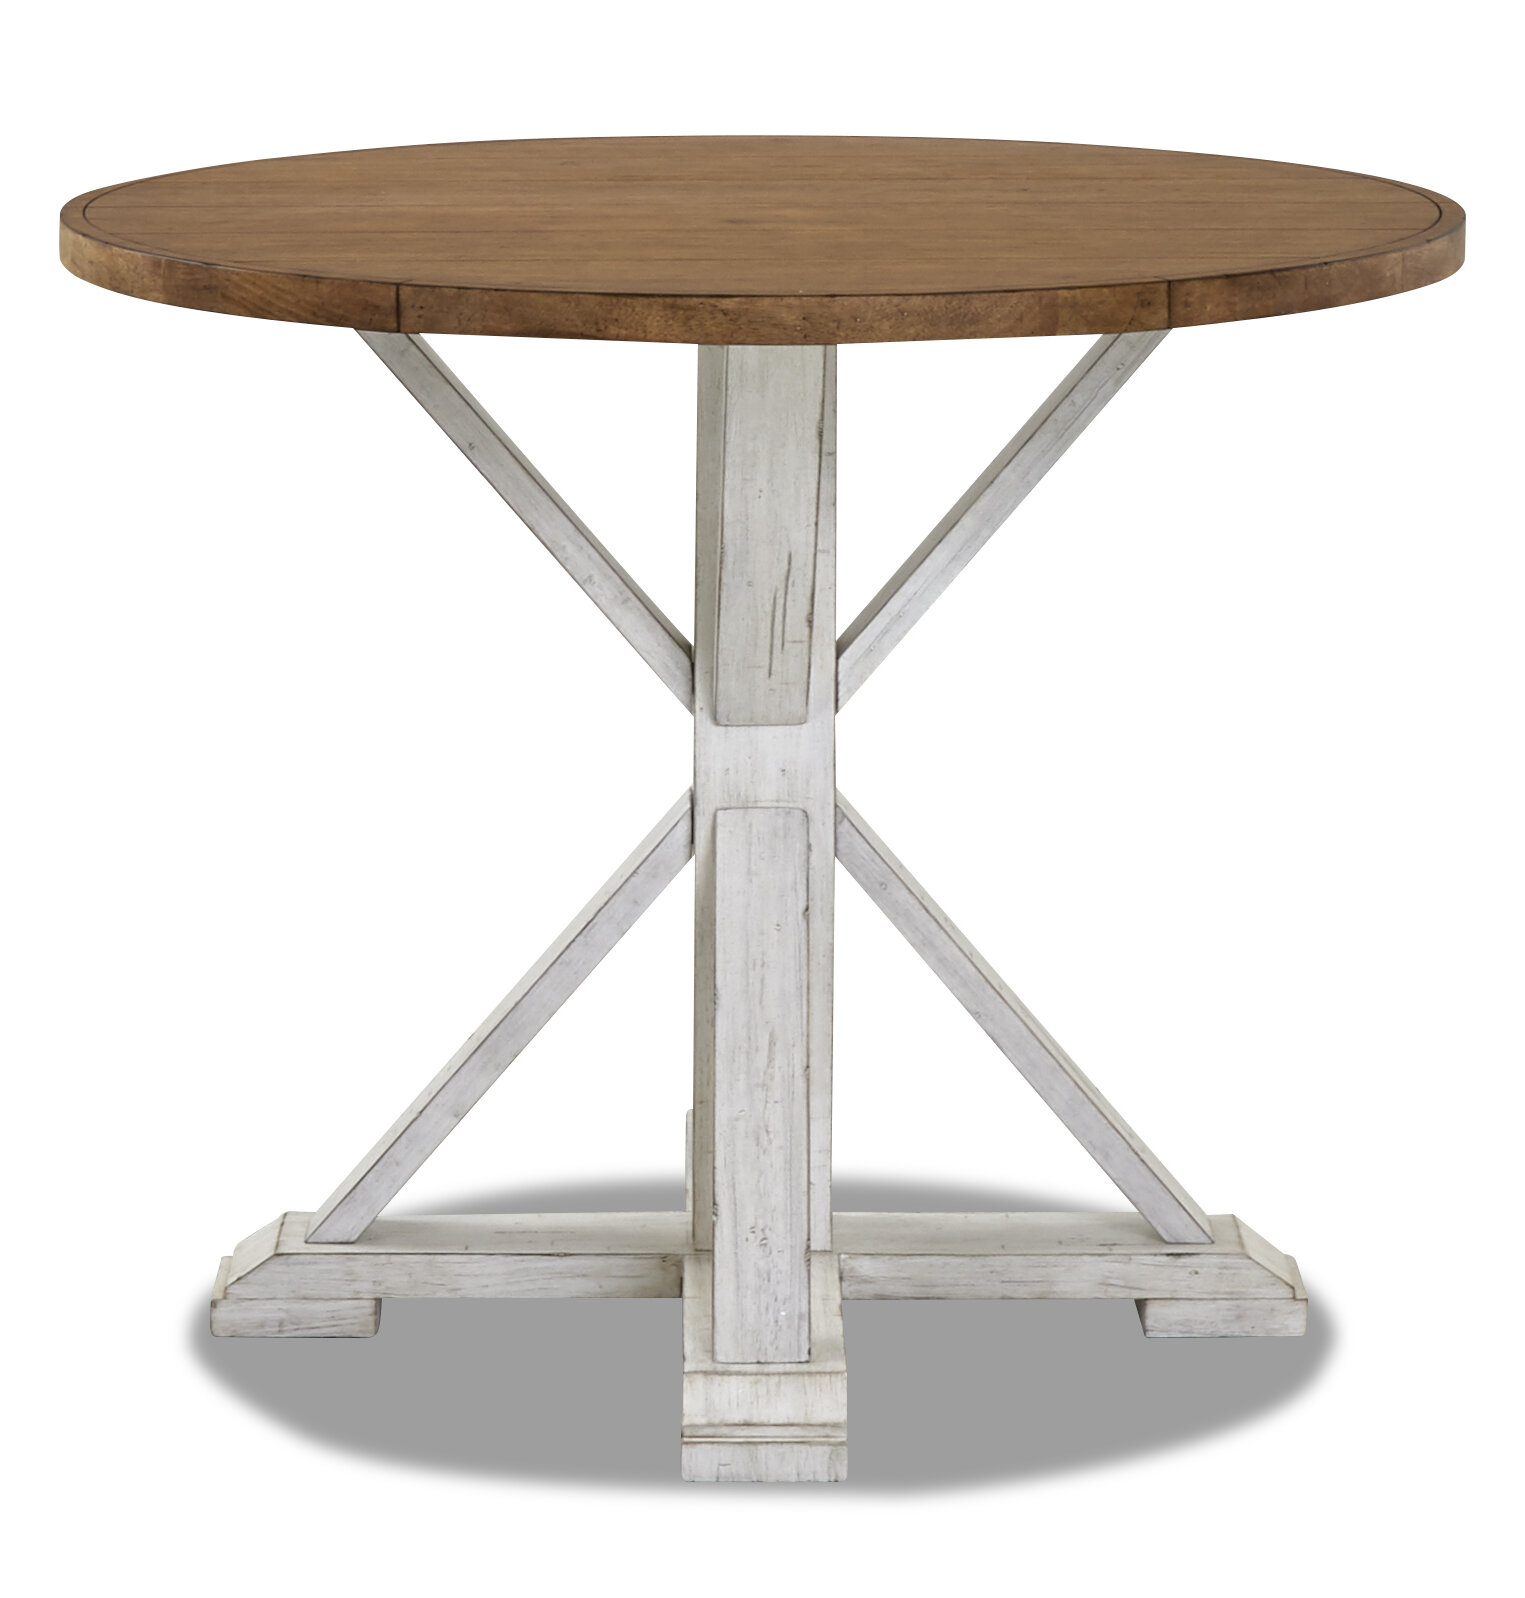 Counter High Round Table.Trisha Yearwood Home High Life Counter Height Dining Table